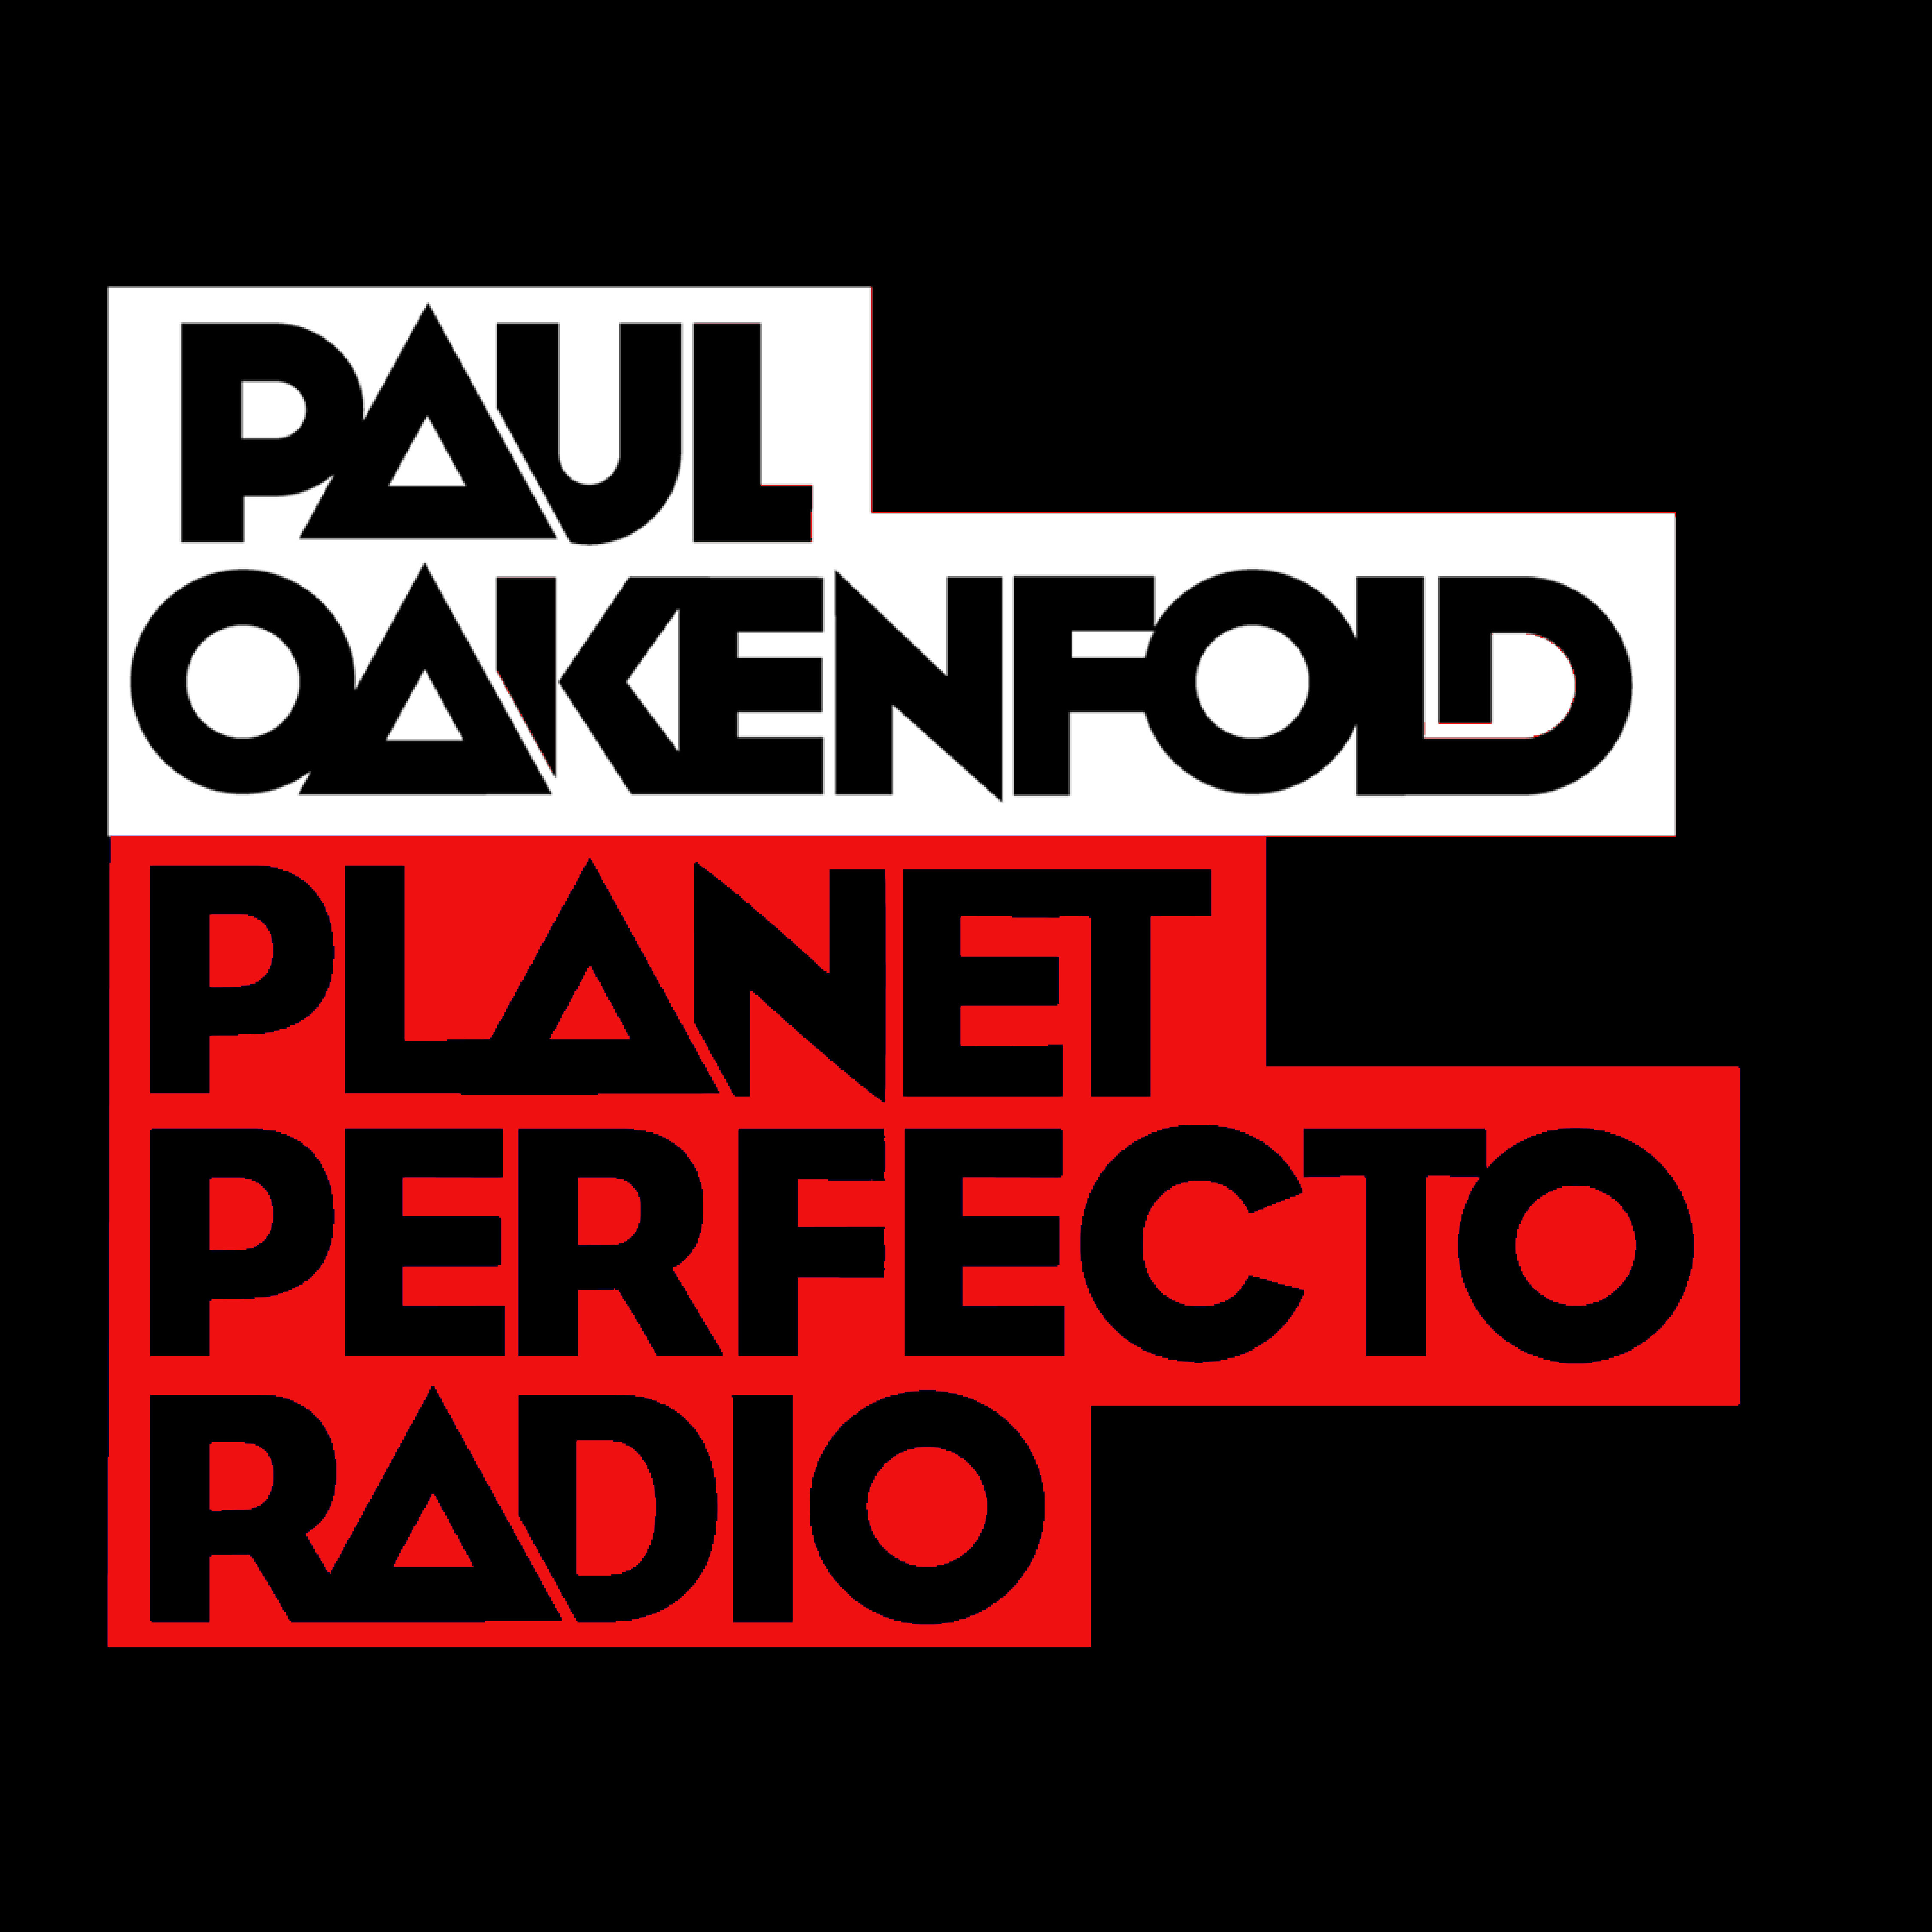 Planet Perfecto Podcast 554 ft. Paul Oakenfold